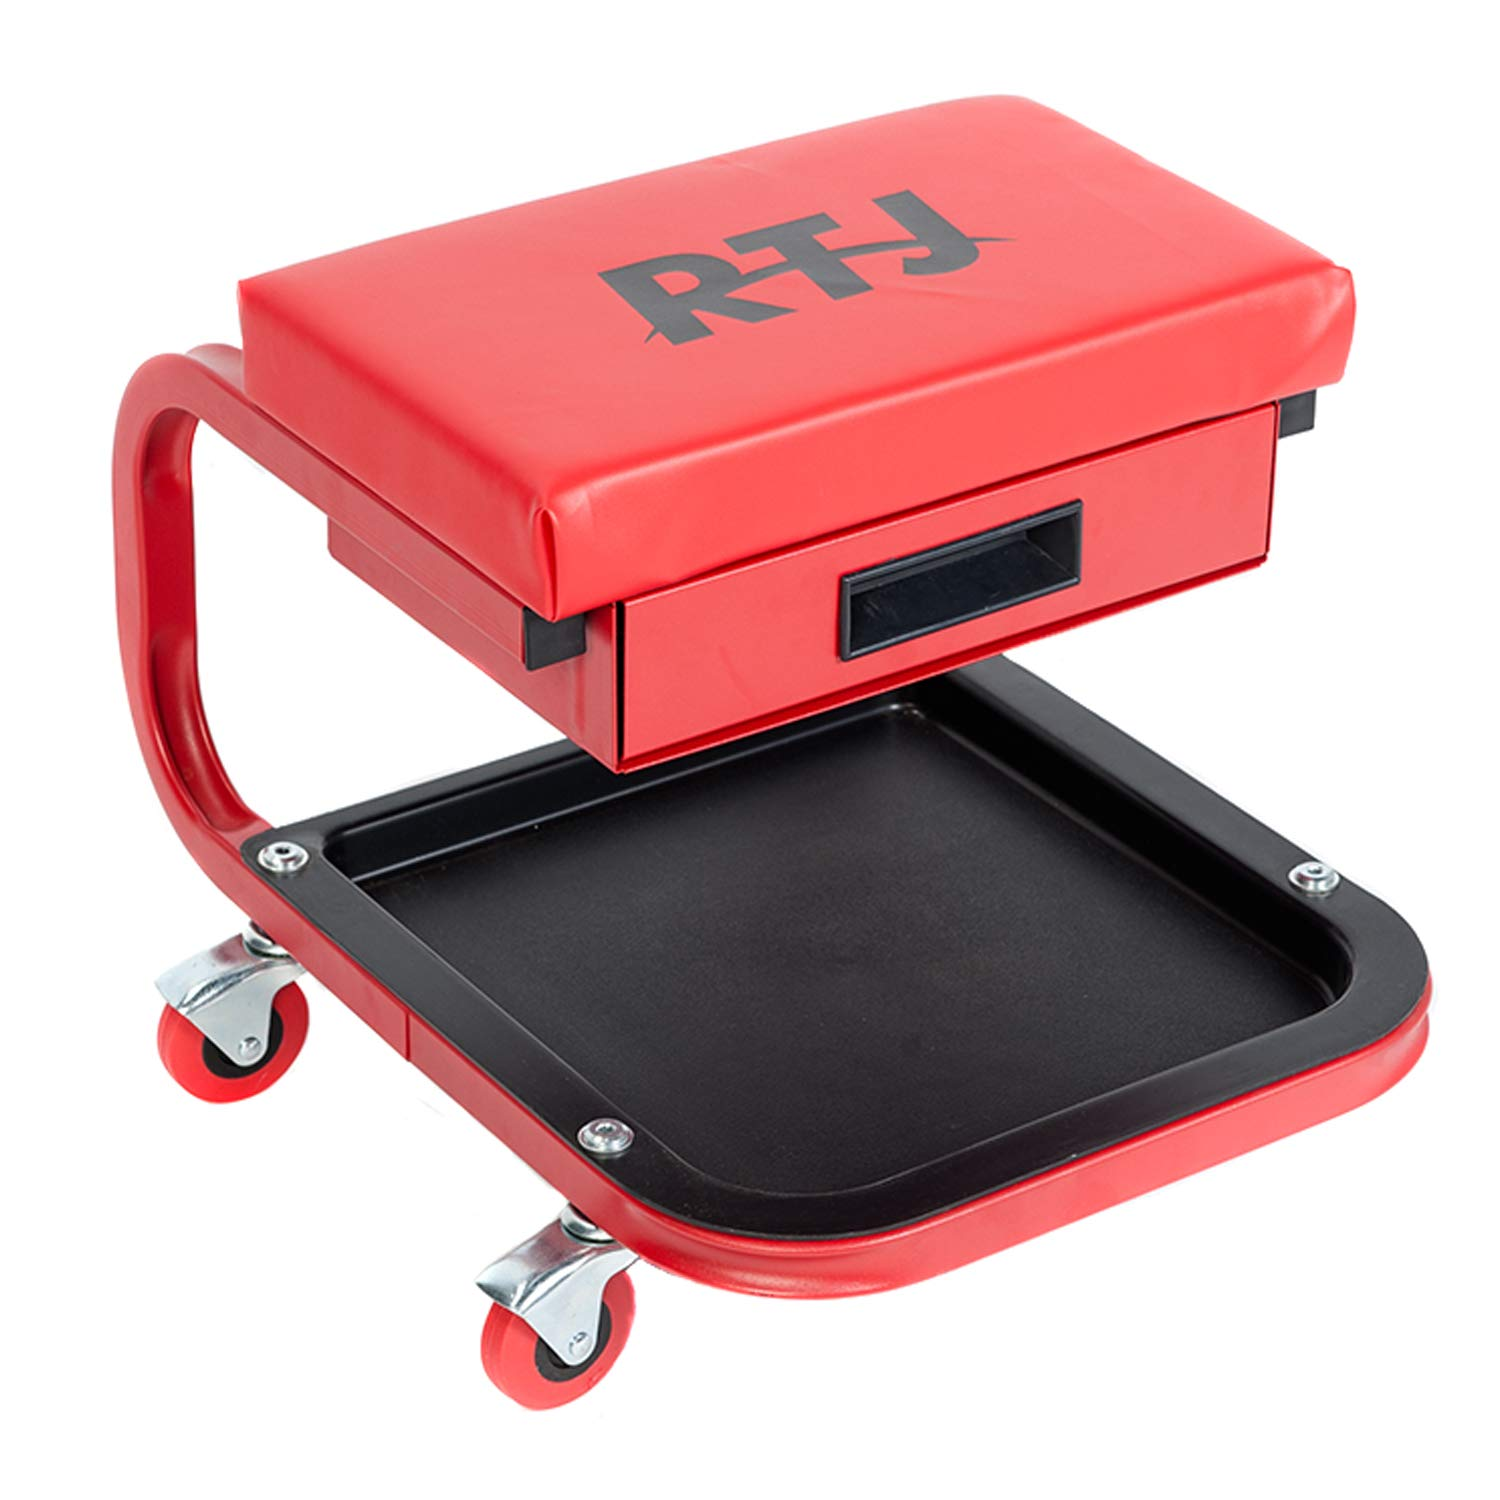 RTJ 250 lbs Capacity Mechanic Roller Seat with Drawer C-Frame Rolling Stool, Red by RTJ